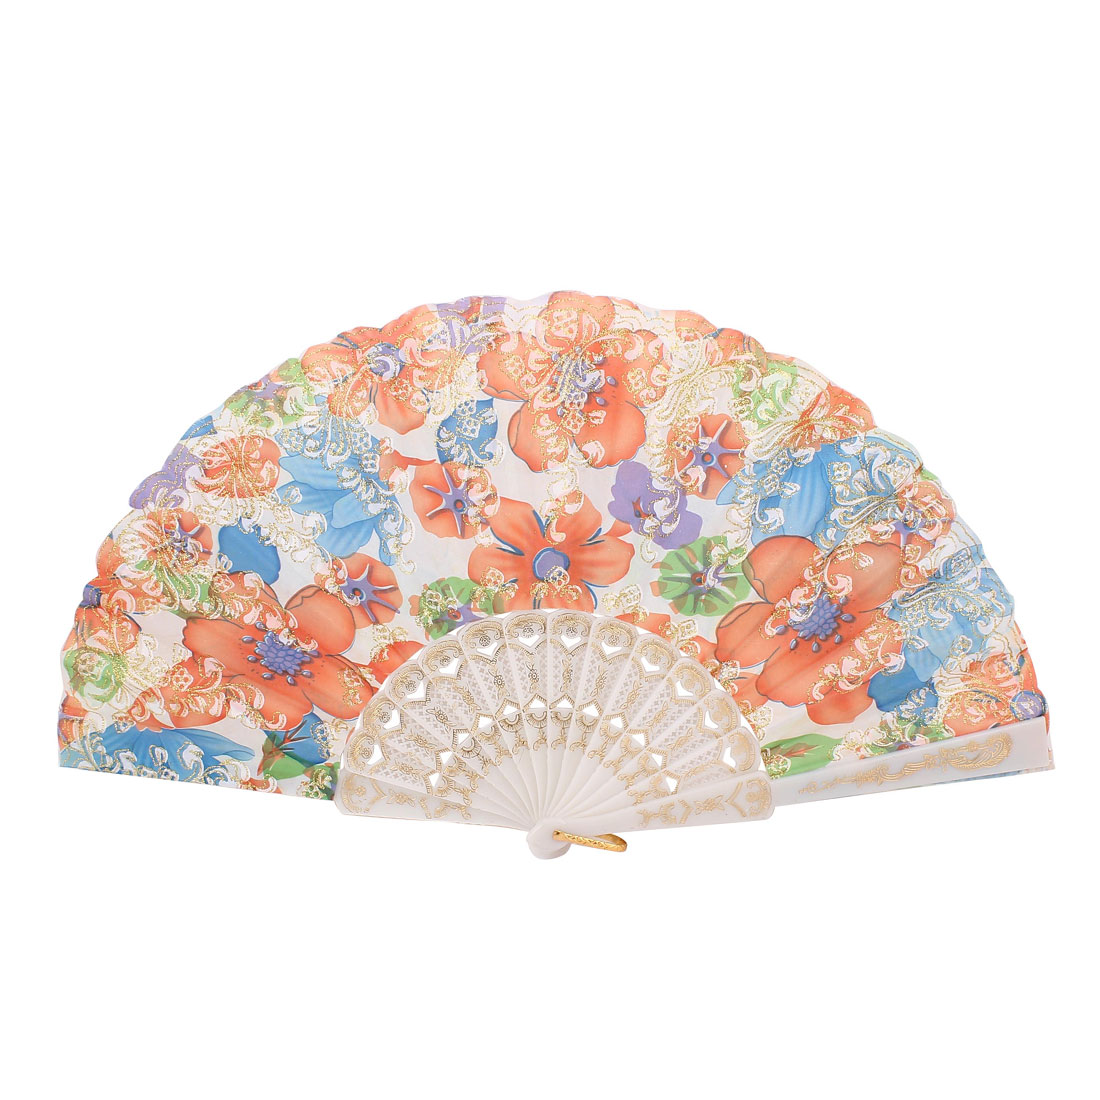 White Frame Flowers Pattern Dancing Wedding Party Fabric Folding Hand Fan